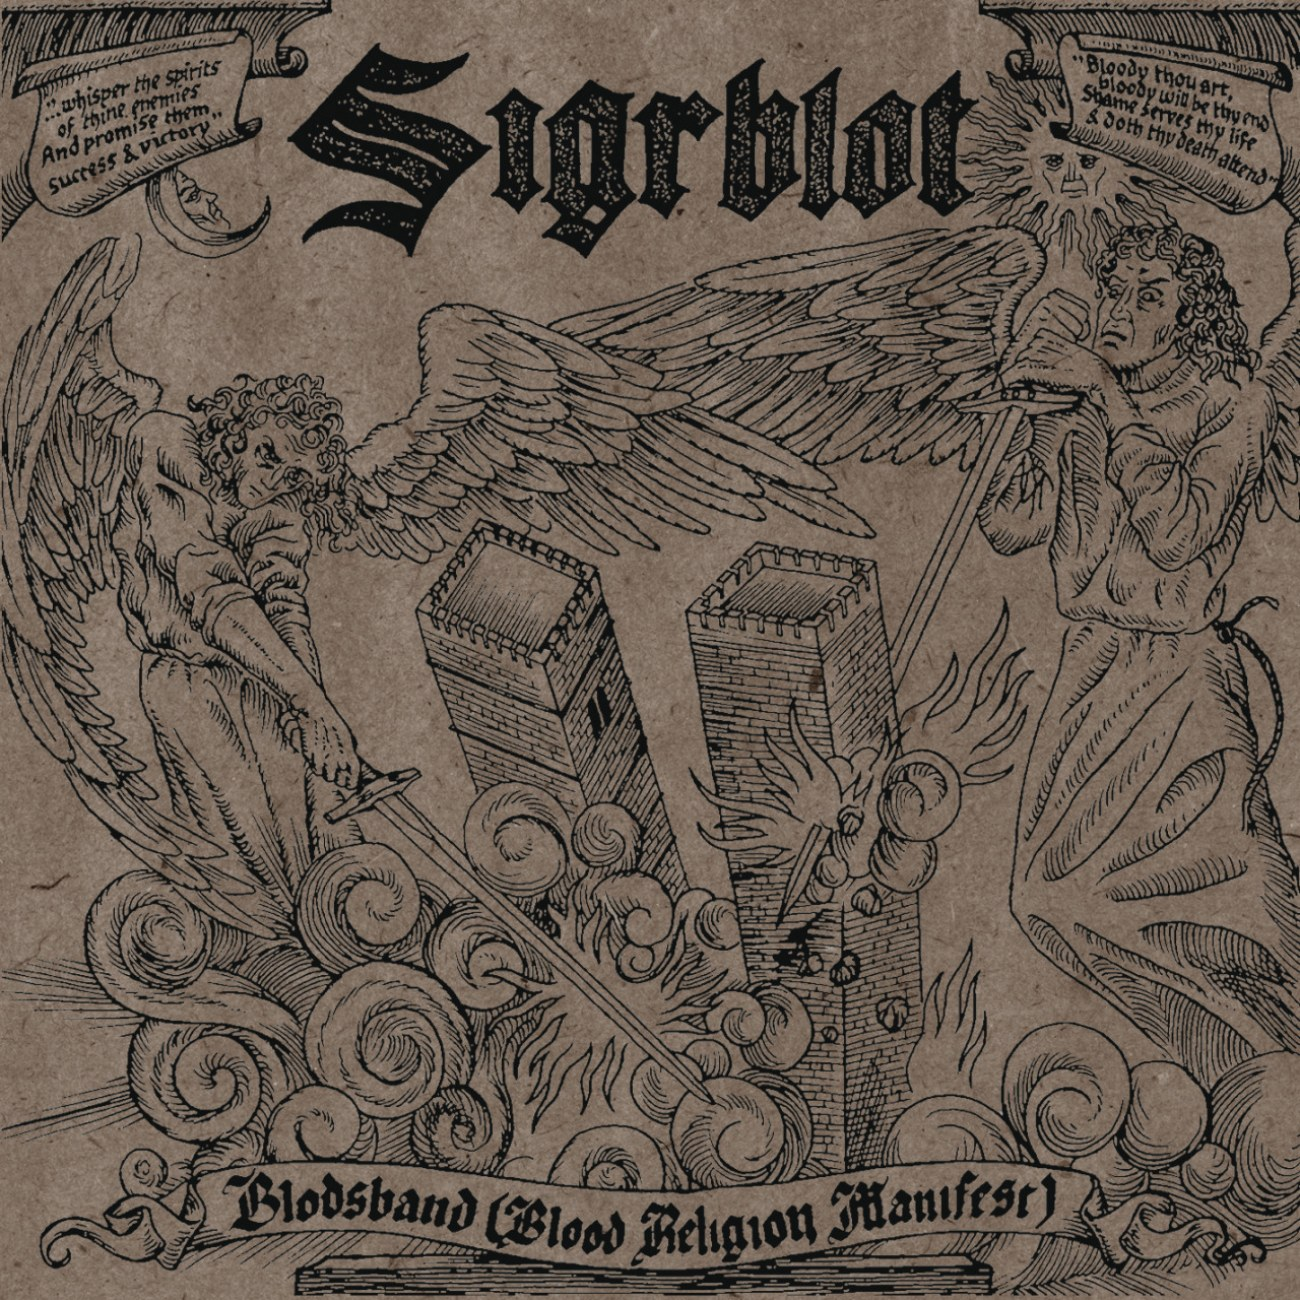 Review for Sigrblot - Blodsband (Blood Religion Manifest)